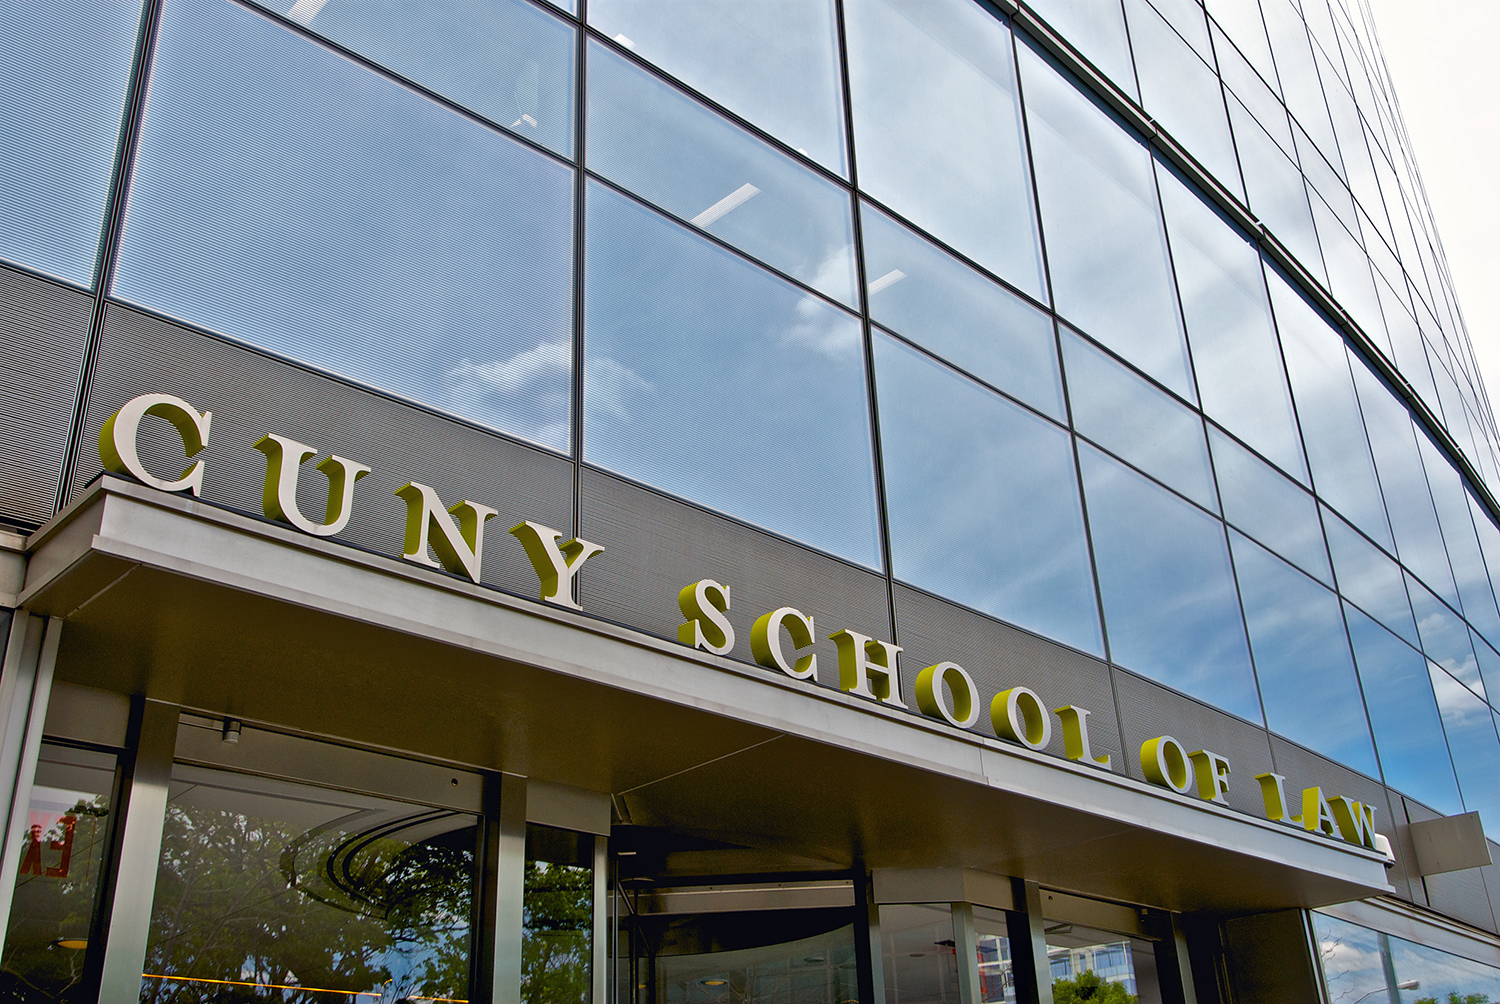 CUNY School of Law — Meaghan Button